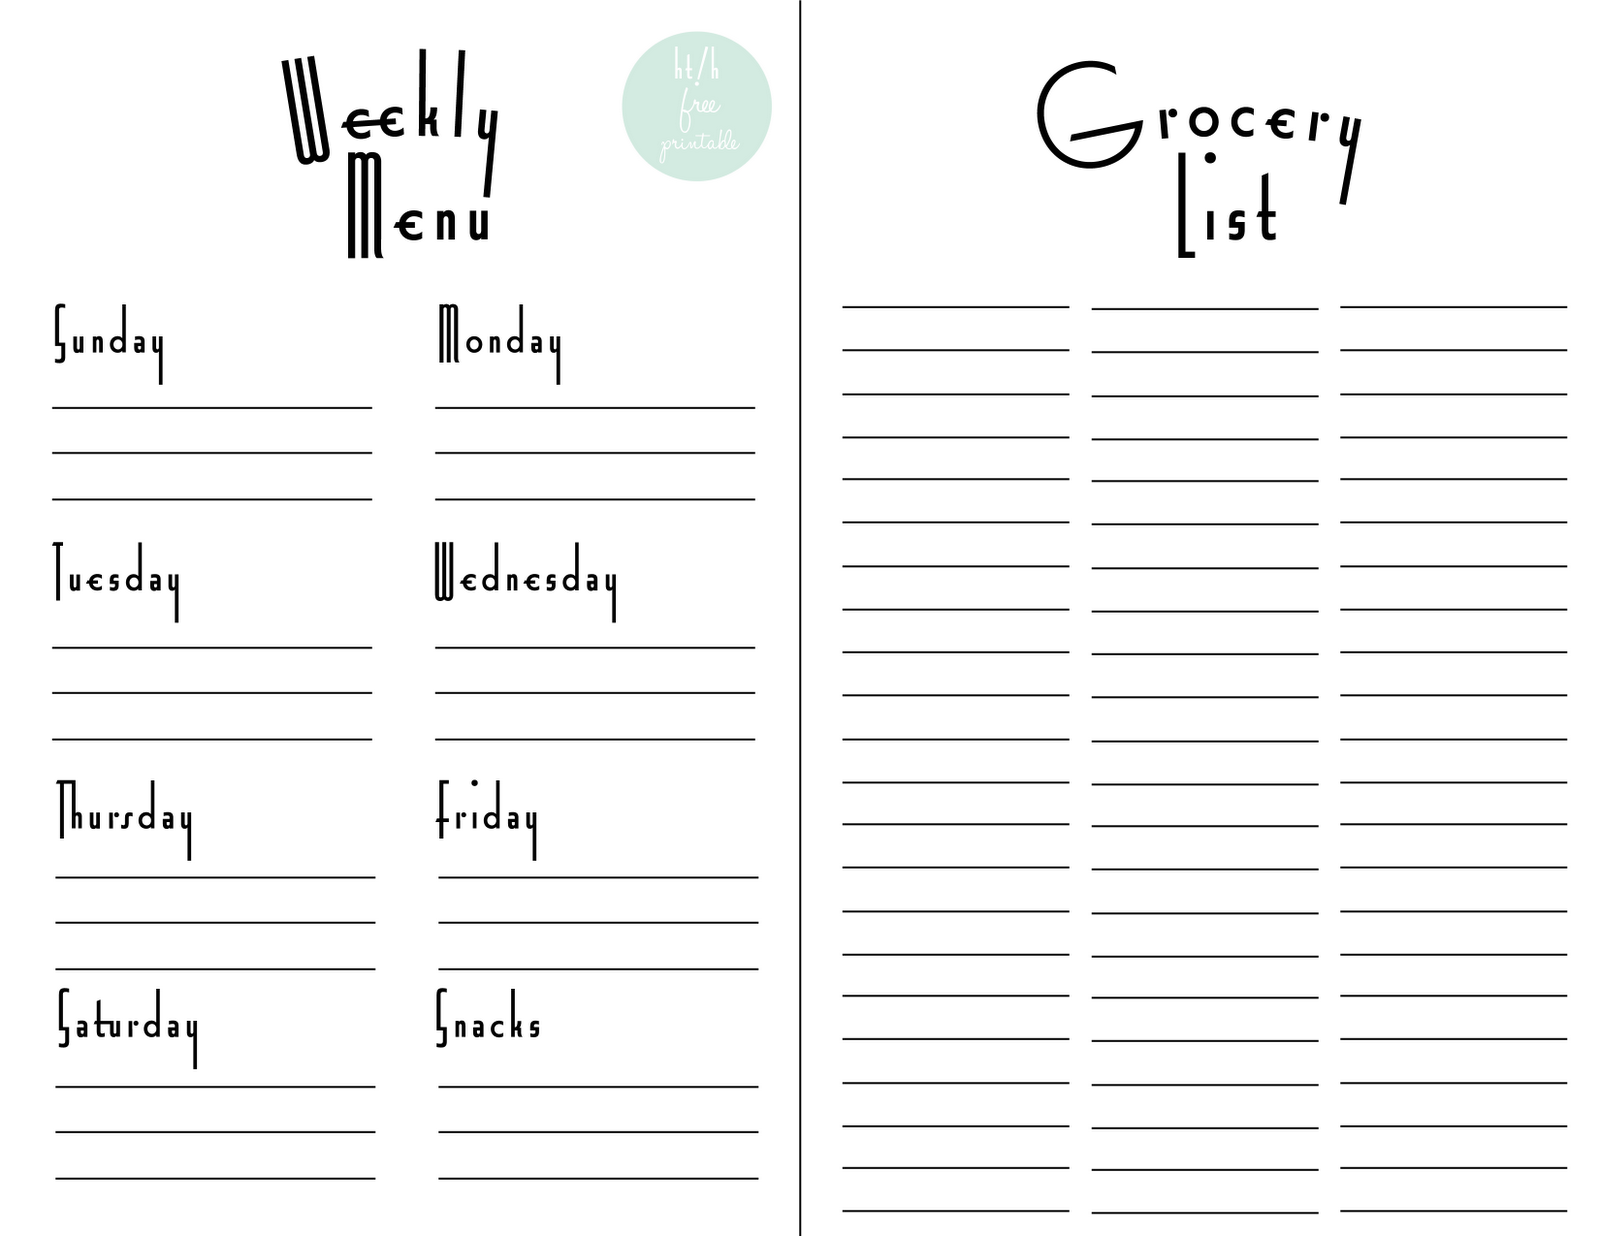 Weekly Menu Planner  Grocery List Free Printable  For The Home